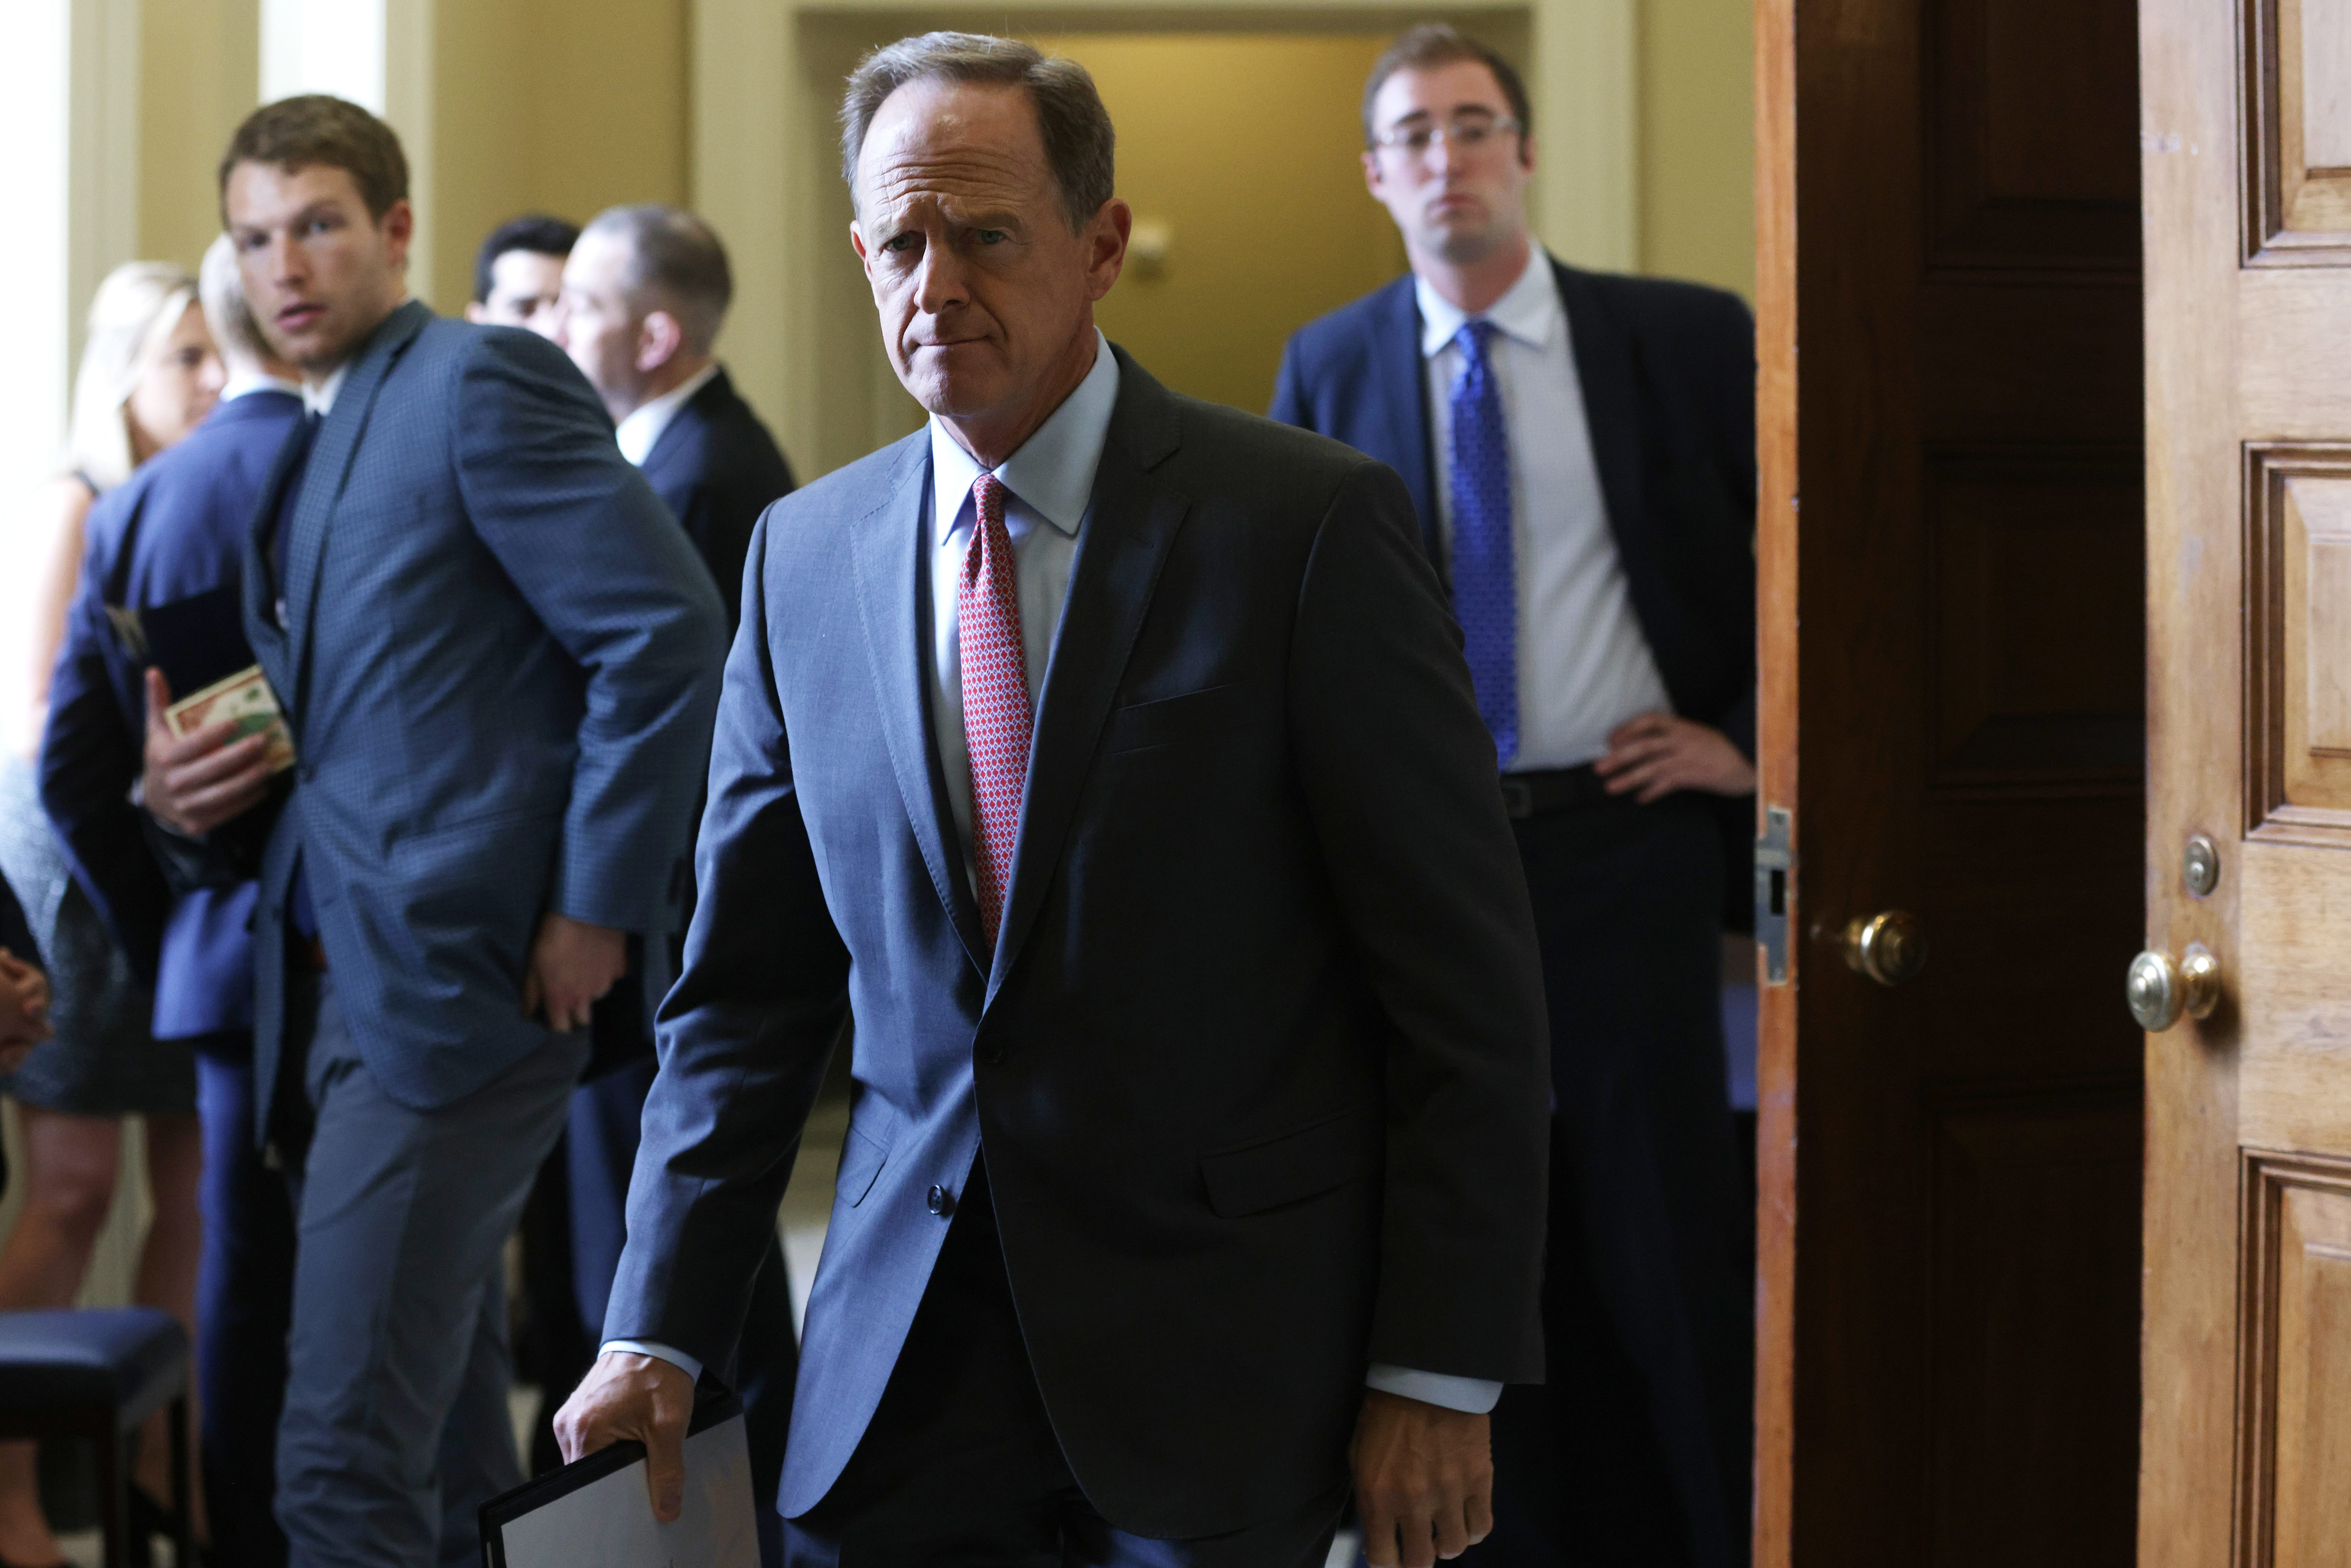 Sen. Pat Toomey, R-Pa., leaves after a Senate Republican luncheon at the U.S. Capitol on July 28, 2021 in Washington, D.C.